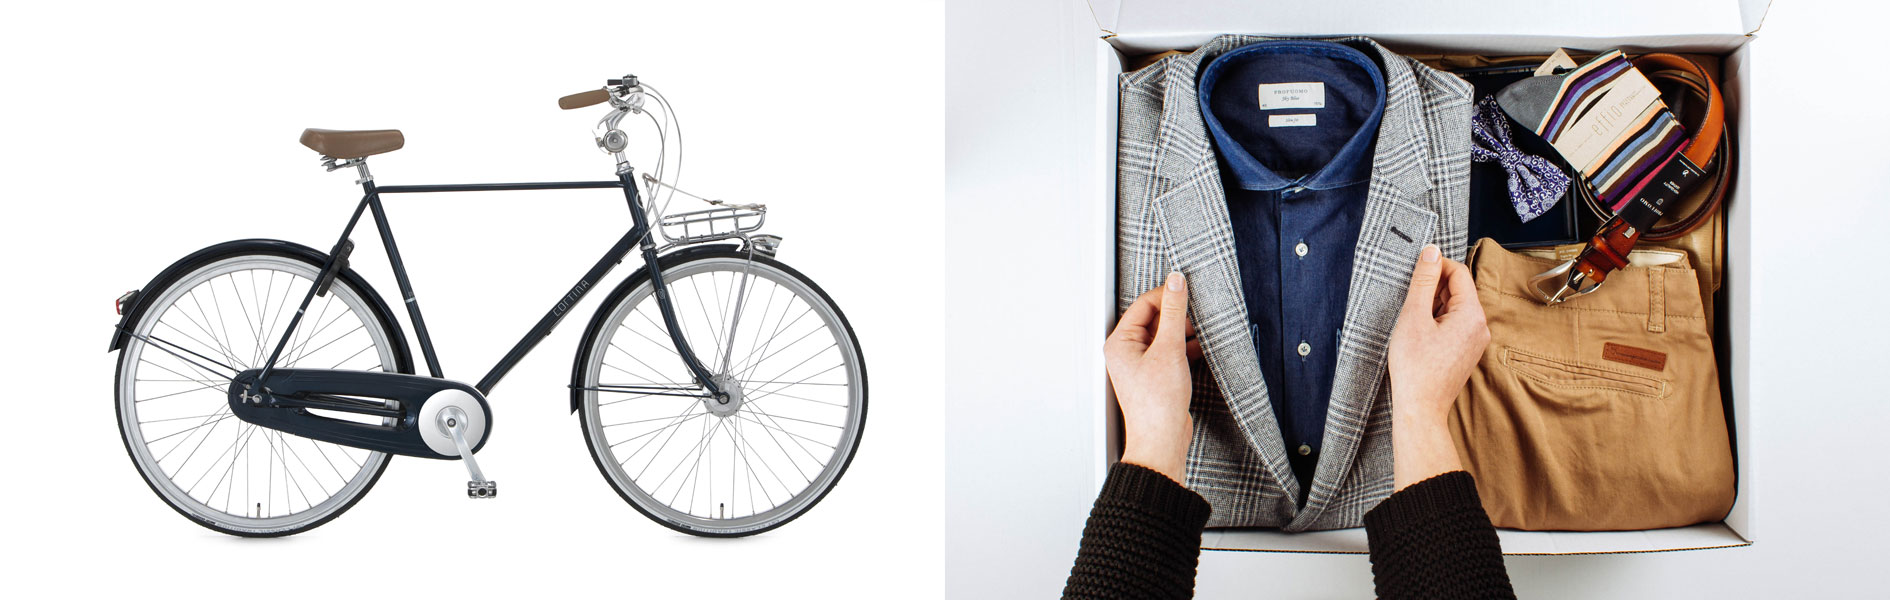 Fiets & Outfit 4